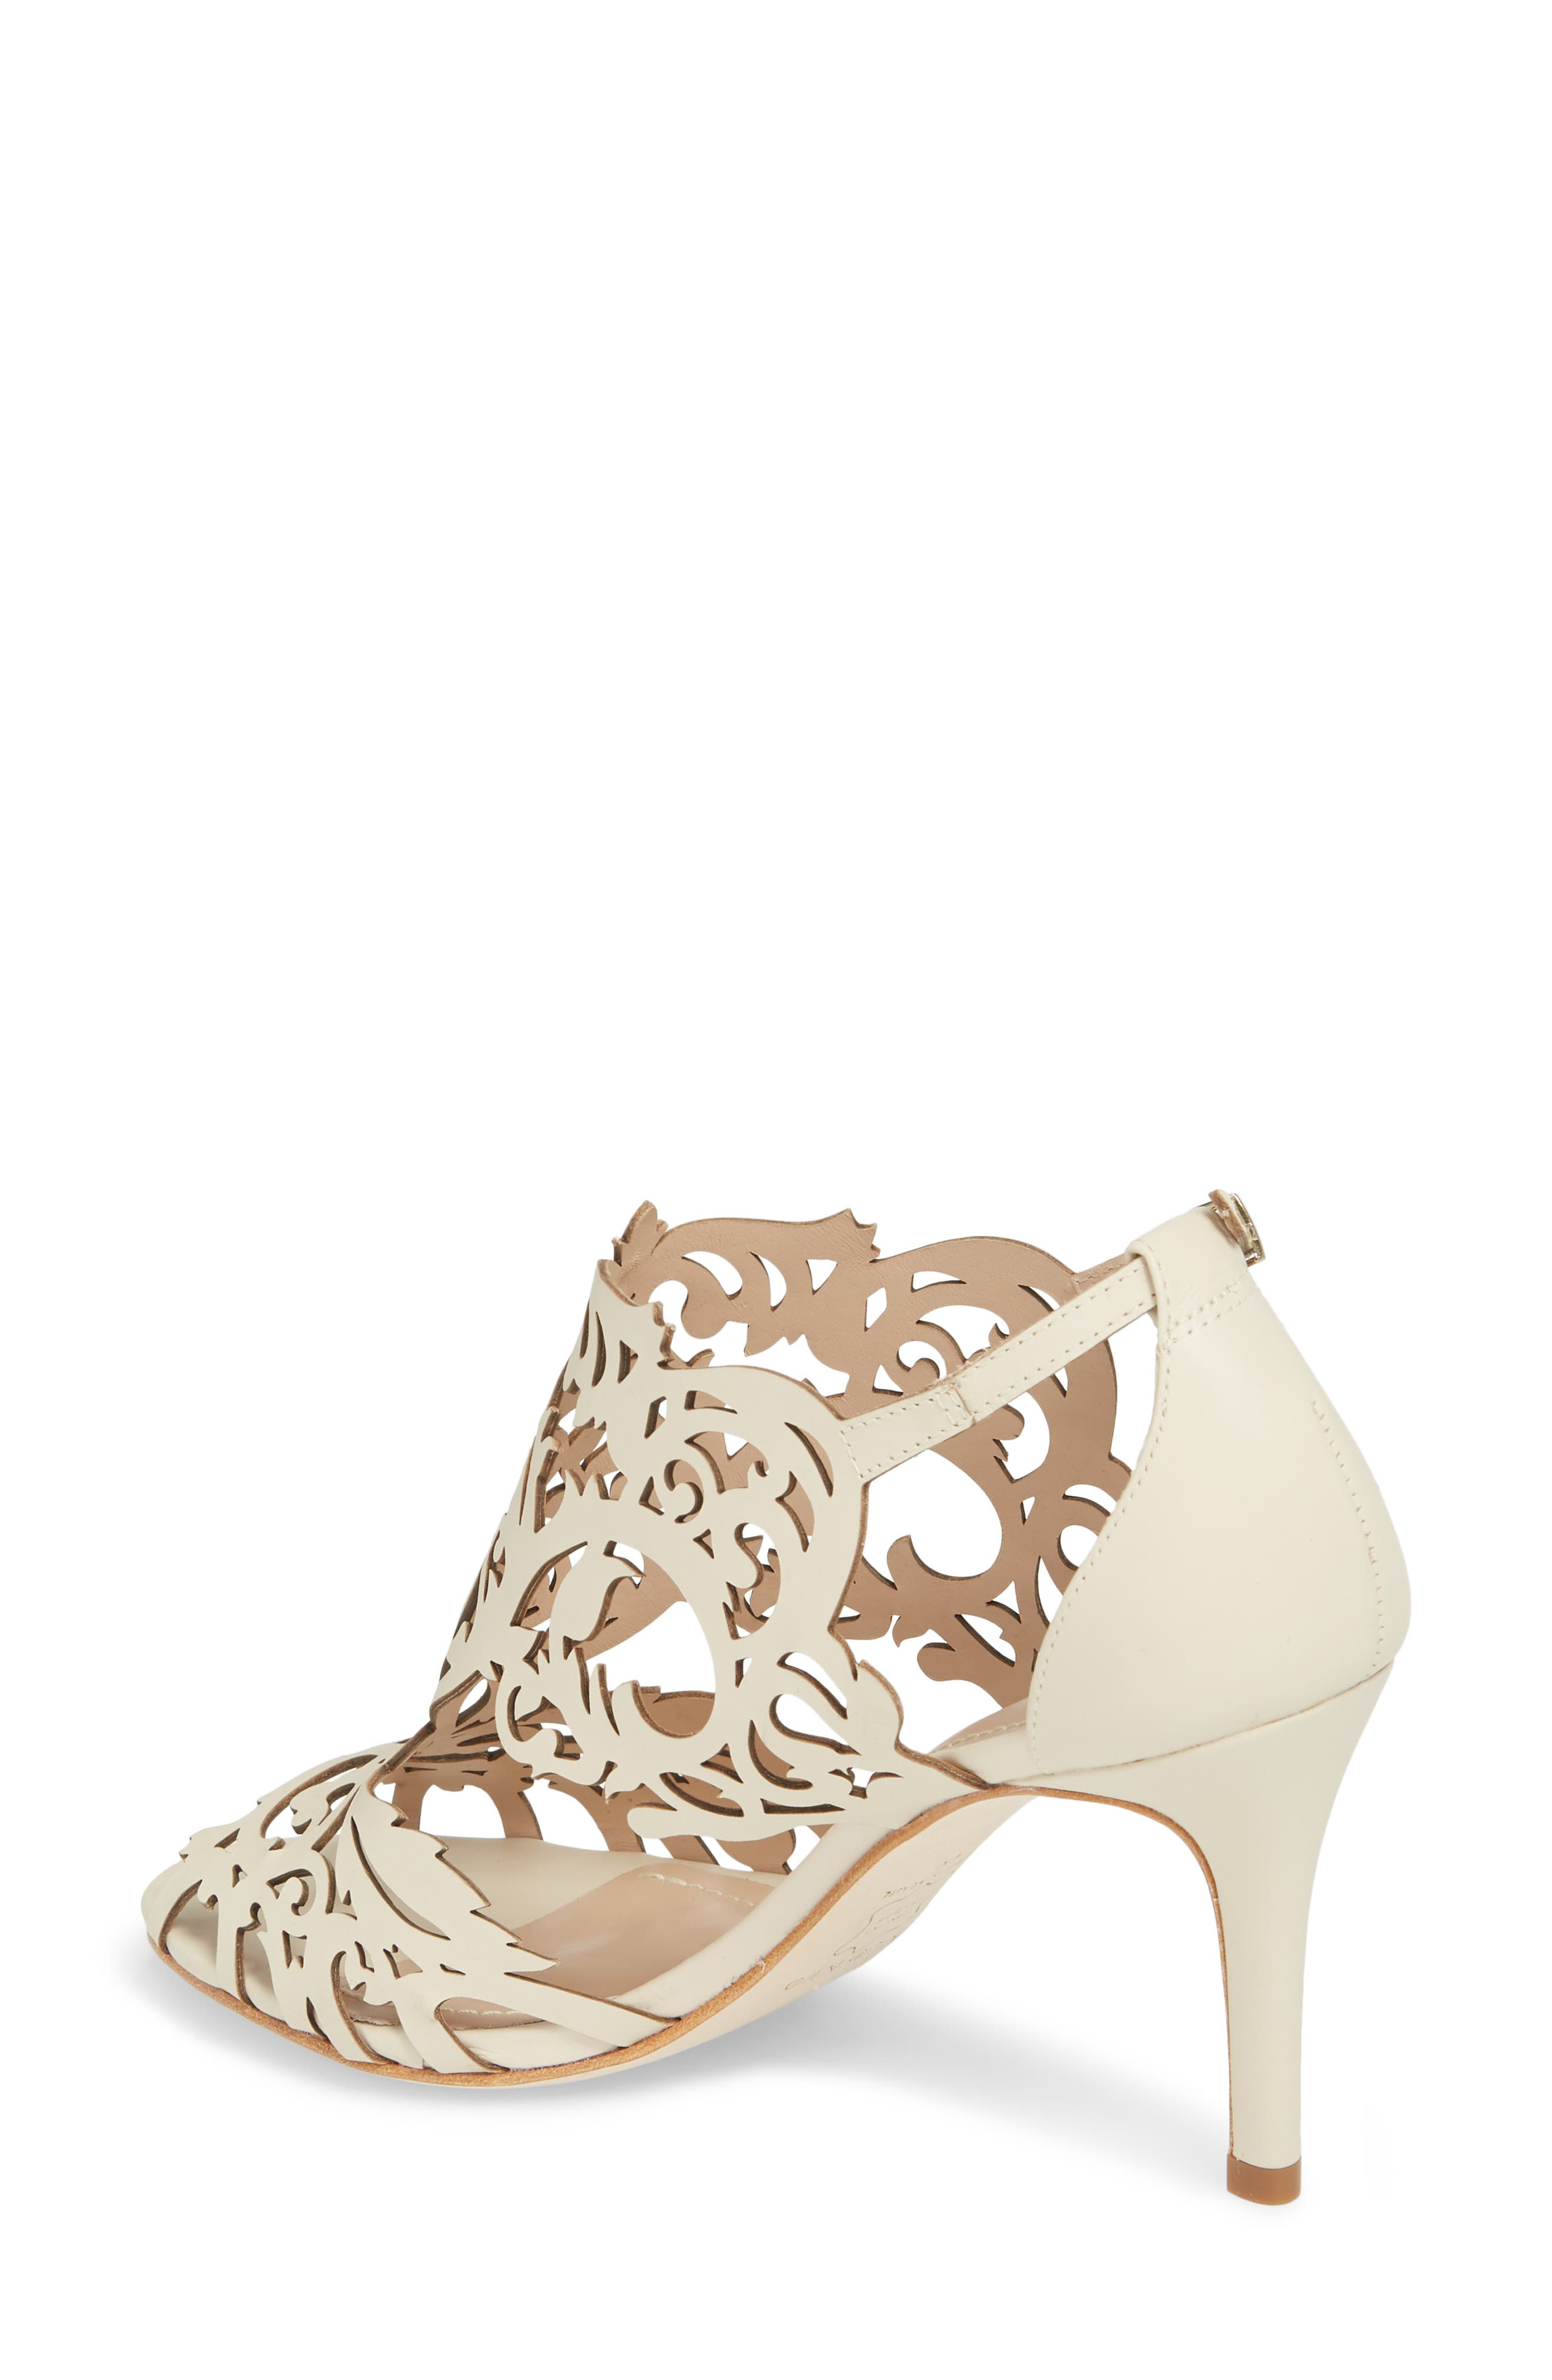 Marcela 3 Laser Cutout Sandal,                             Alternate thumbnail 2, color,                             Ivory Leather